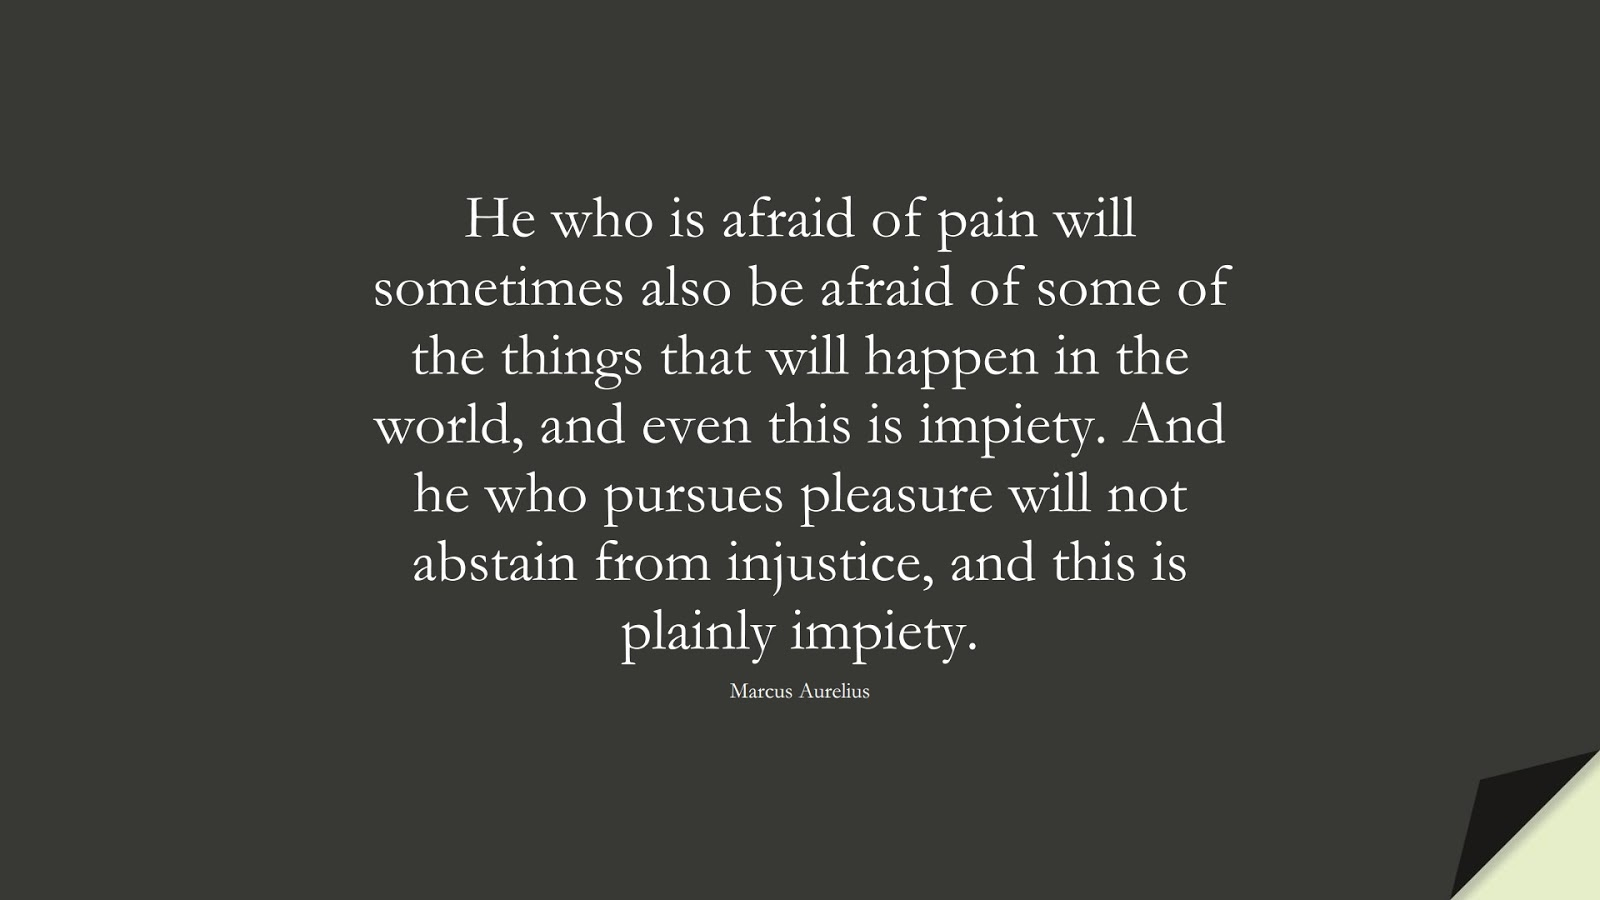 He who is afraid of pain will sometimes also be afraid of some of the things that will happen in the world, and even this is impiety. And he who pursues pleasure will not abstain from injustice, and this is plainly impiety. (Marcus Aurelius);  #MarcusAureliusQuotes